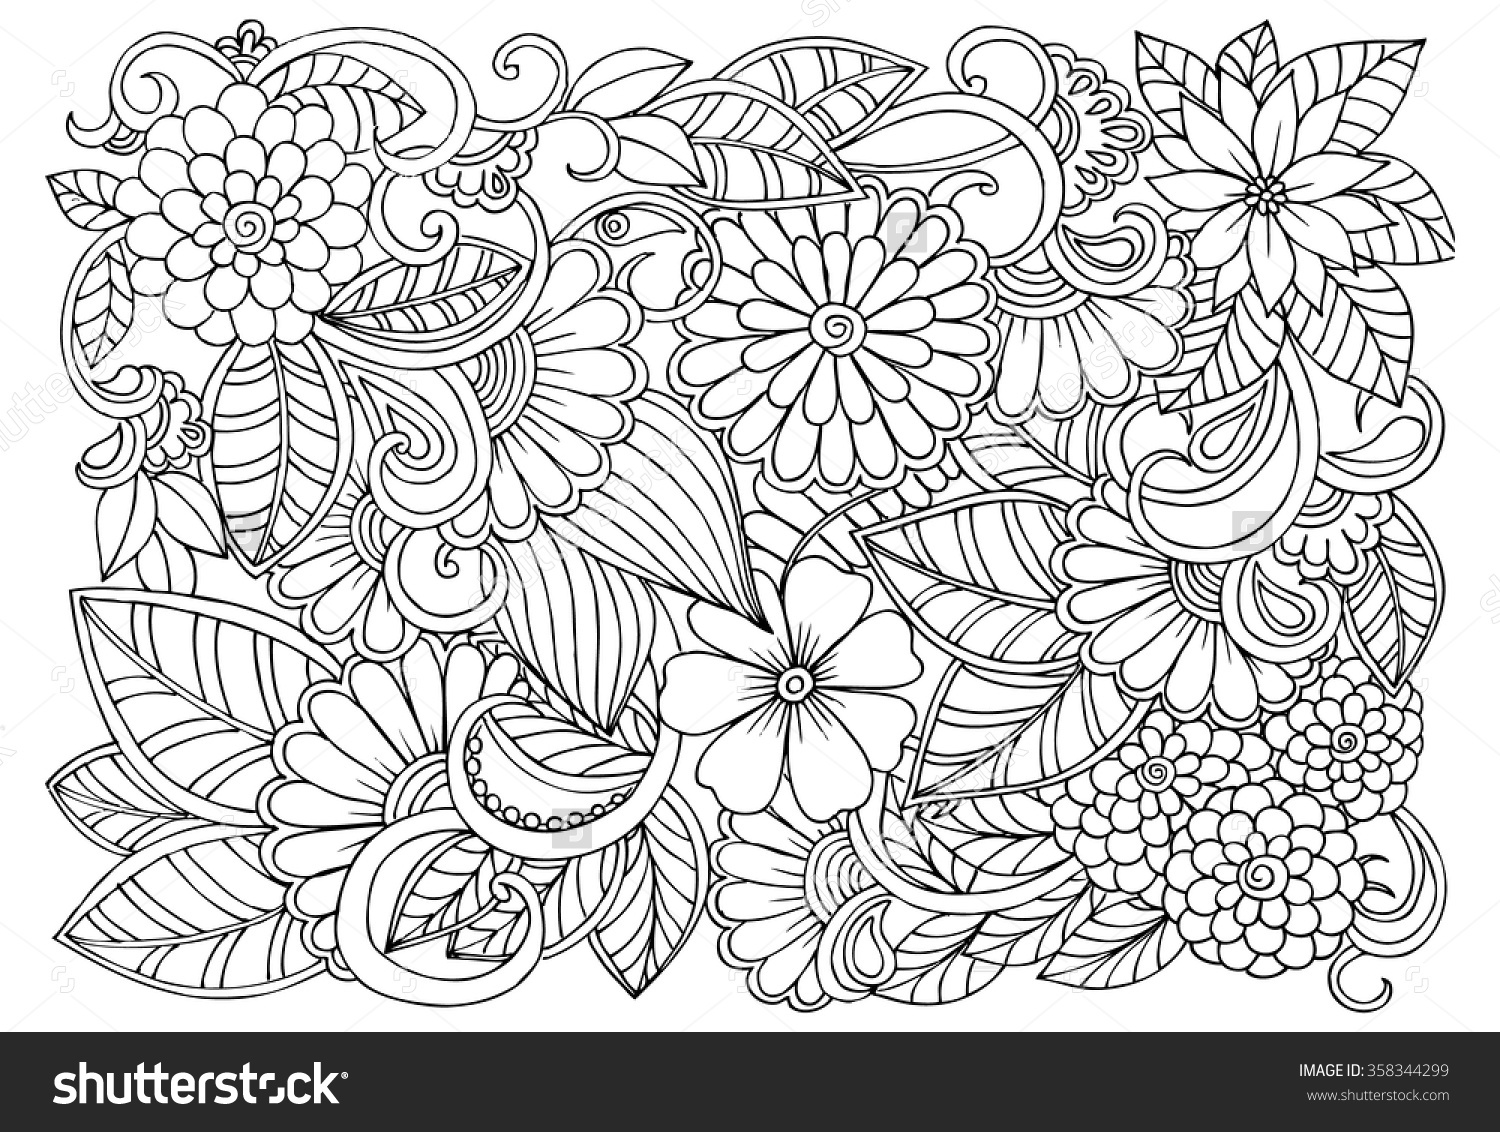 1500x1132 Endorsed Coloring Pages Patterns And Designs Flower To Color